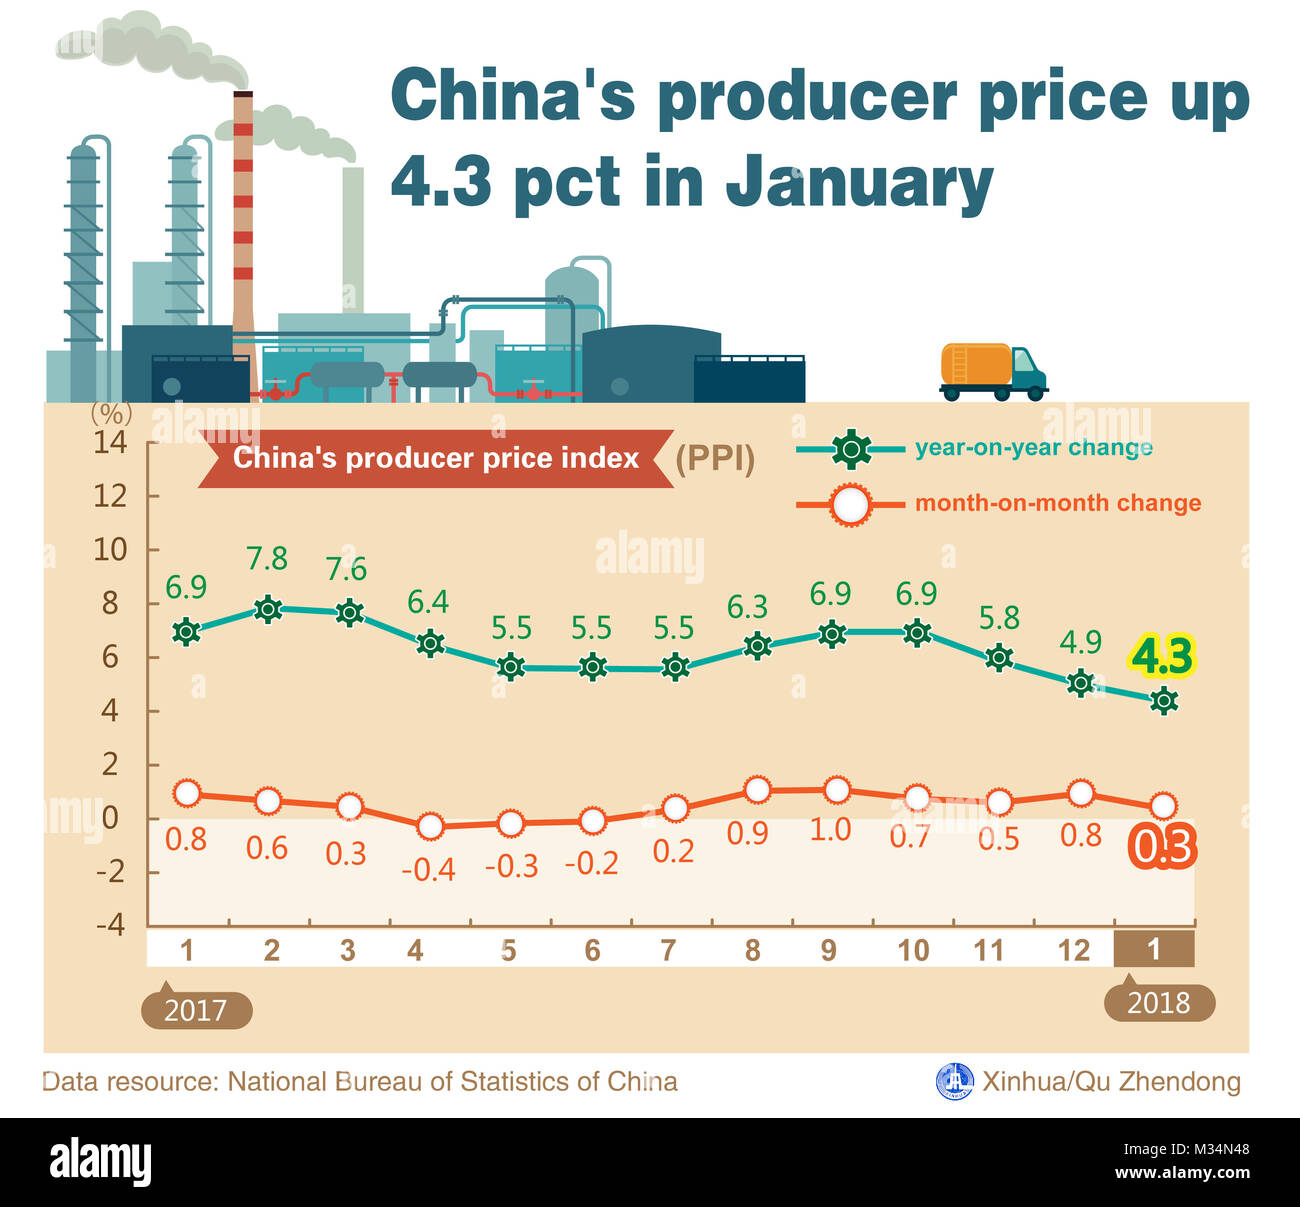 Beijing, China. 9th Feb, 2018. Graphics shows that China's producer price index (PPI), which measures costs - Stock Image